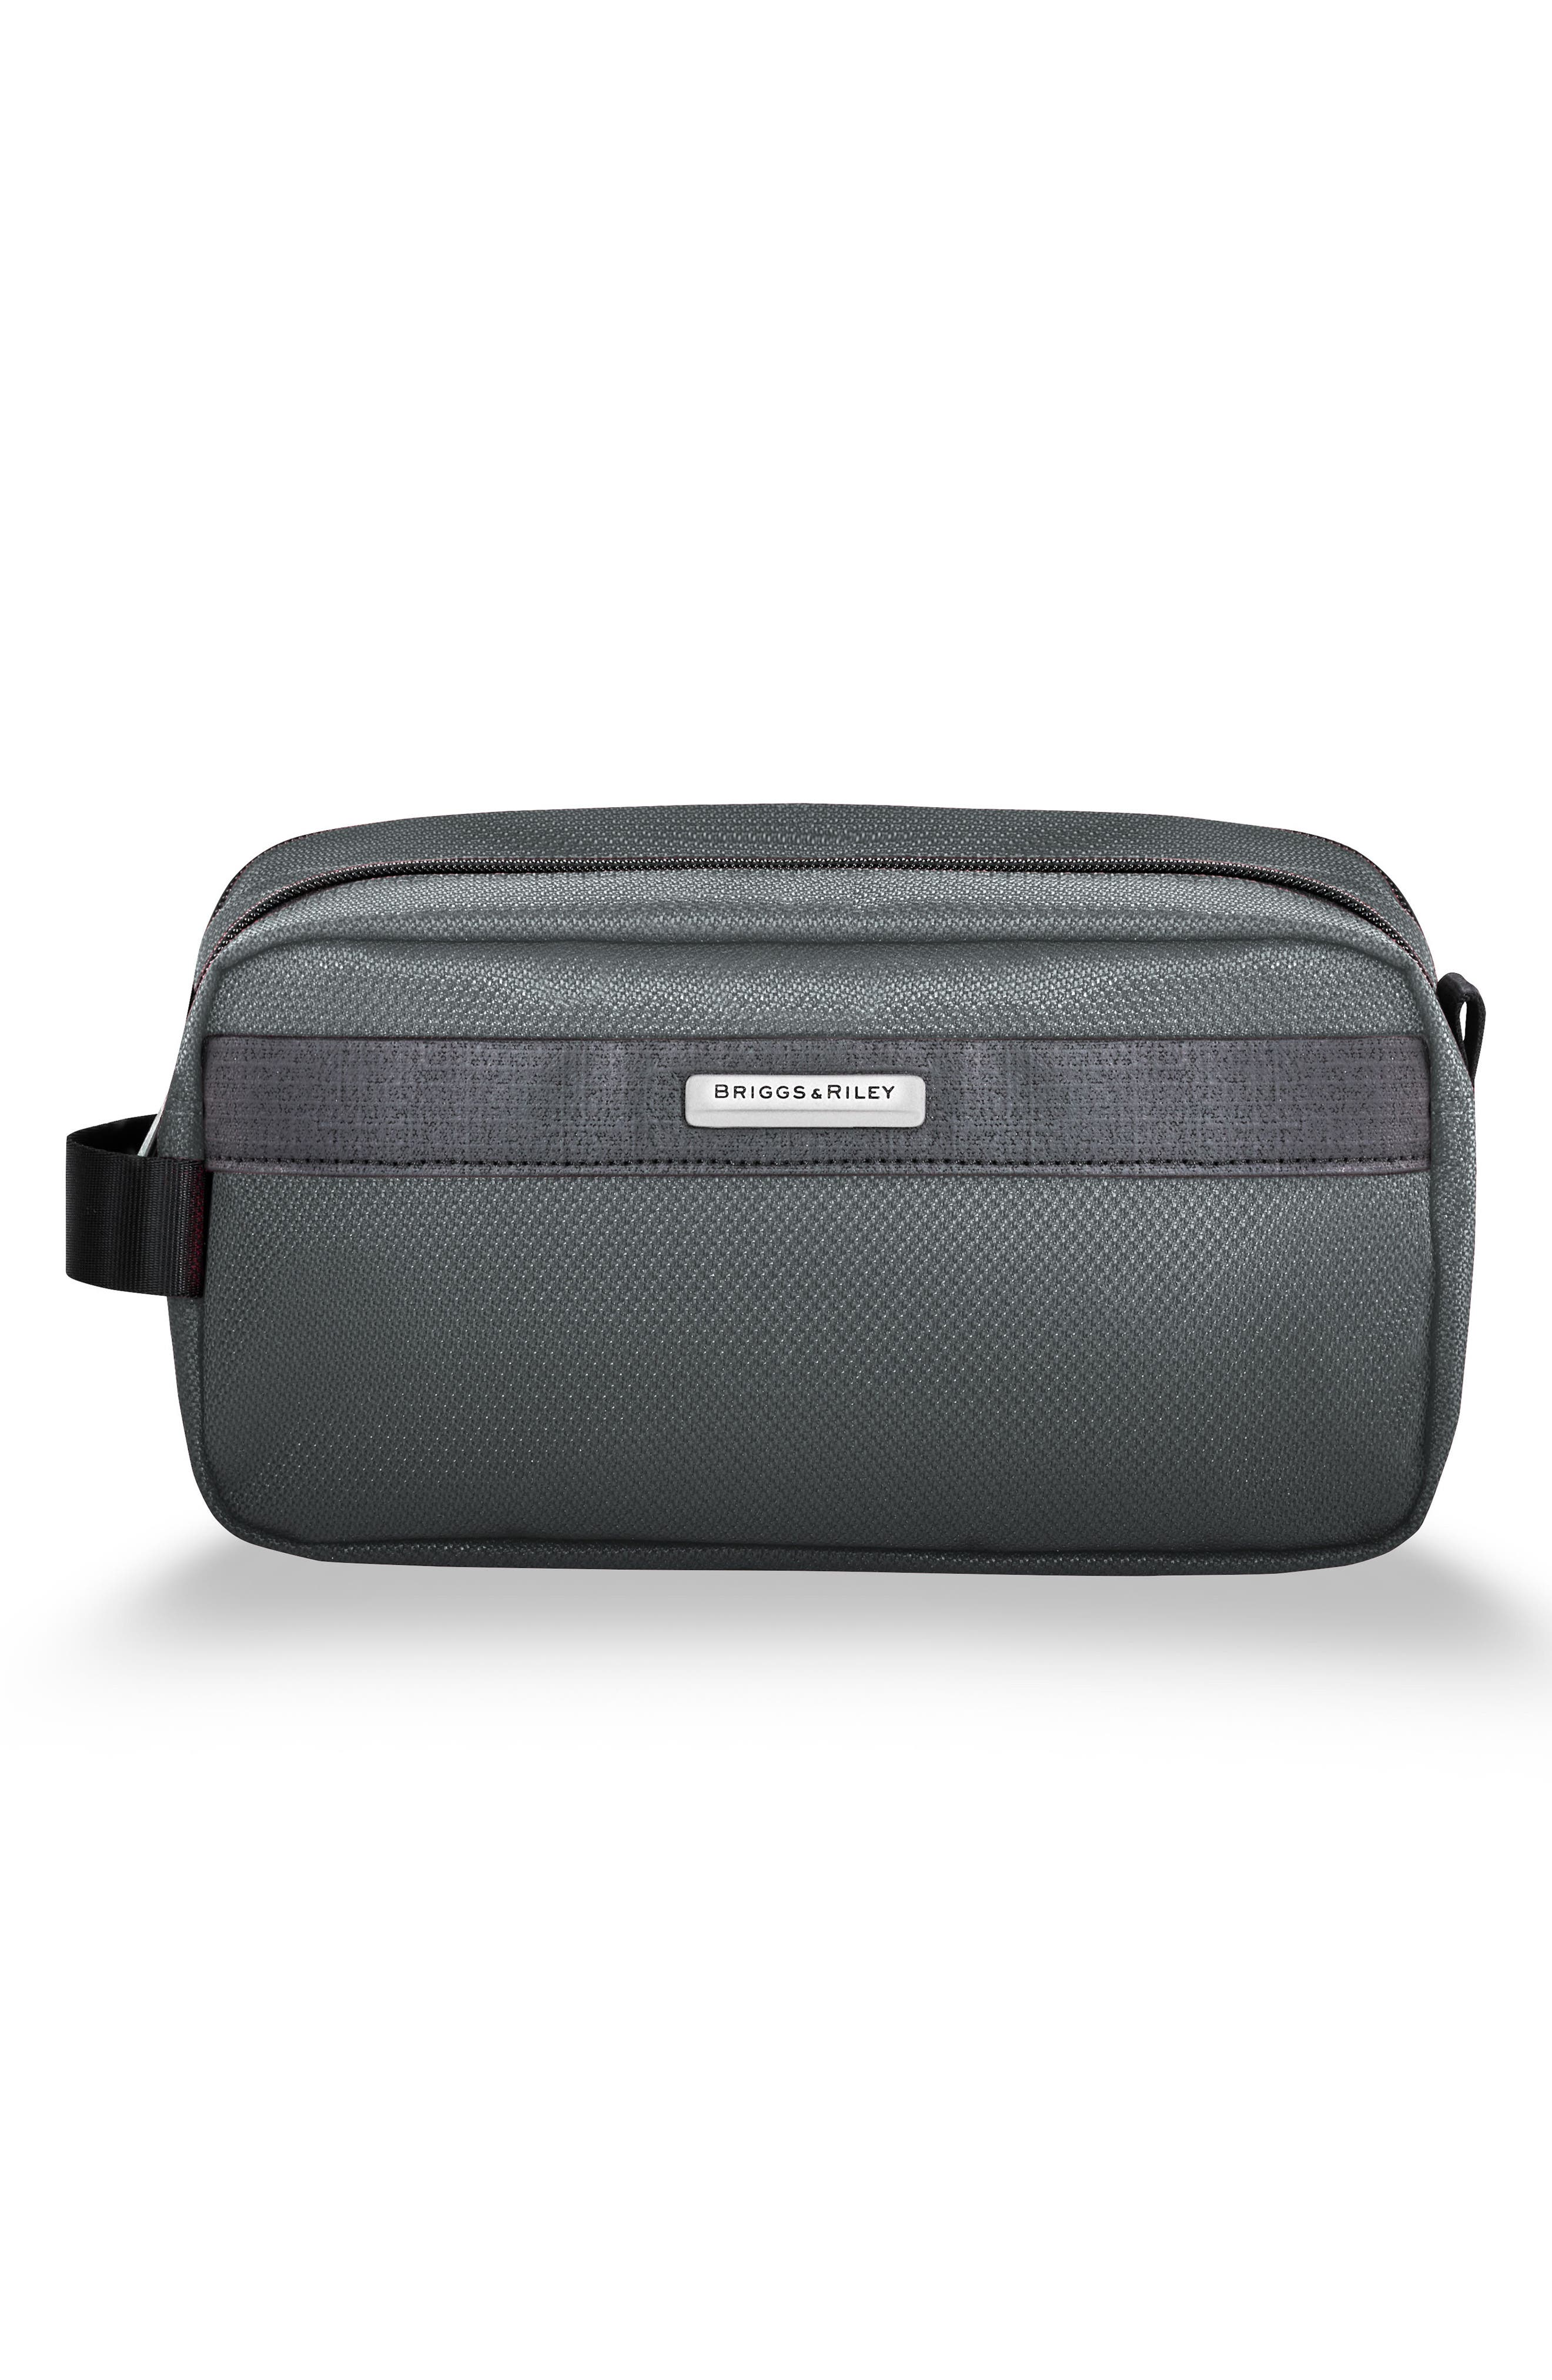 BRIGGS & RILEY, Transcend 400 Toiletry Kit, Main thumbnail 1, color, SLATE GREY